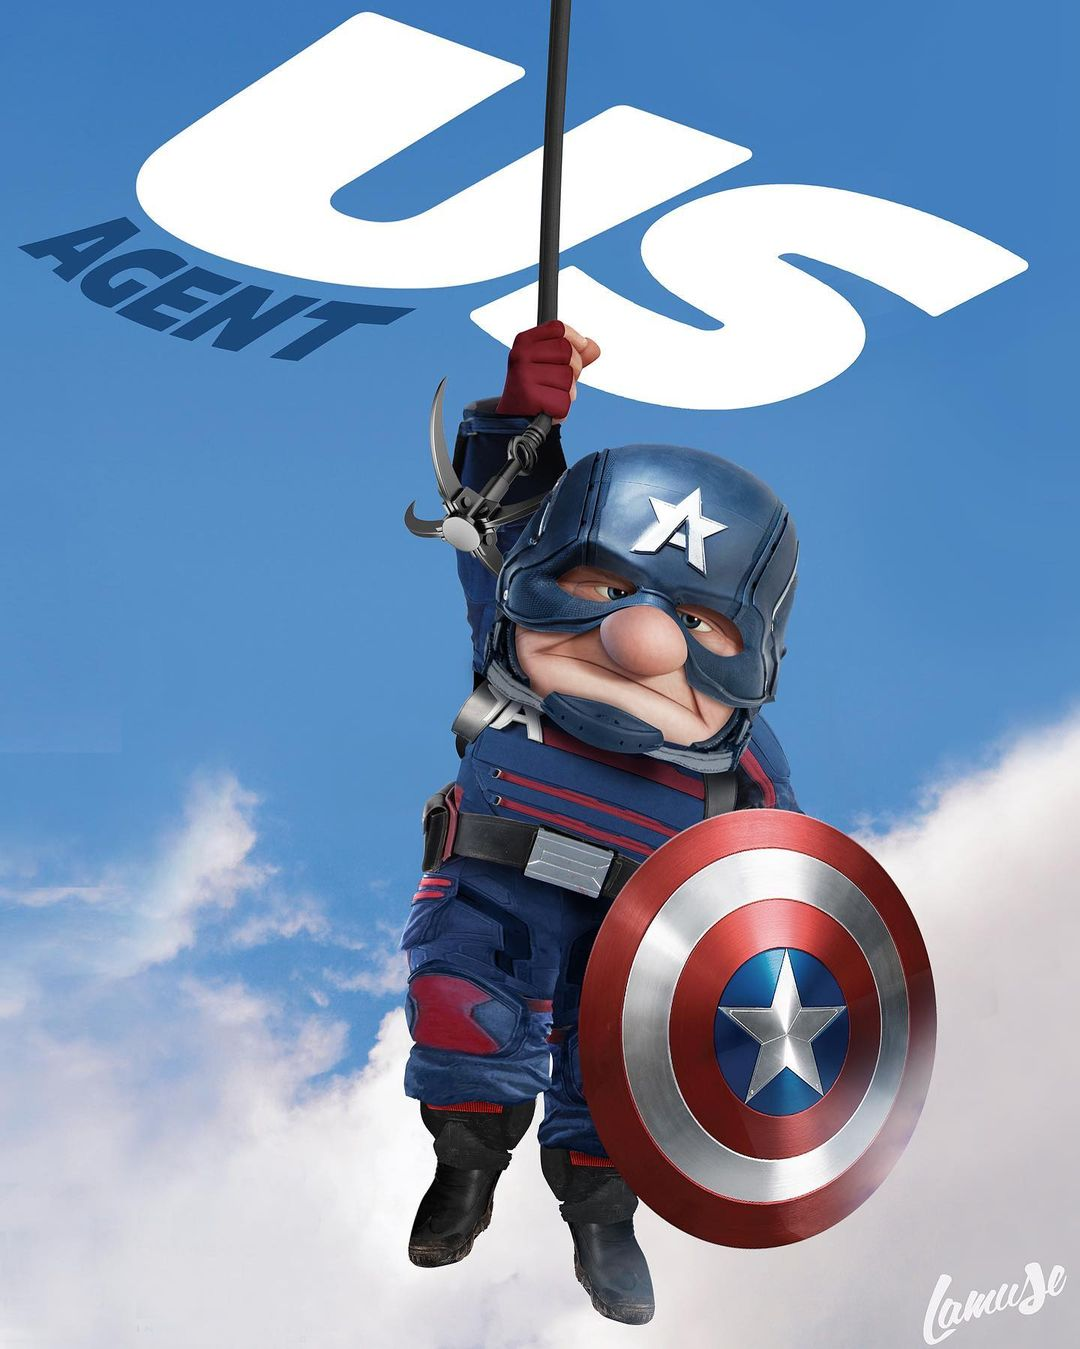 Disney characters reimagined as Marvel and DC icons 26